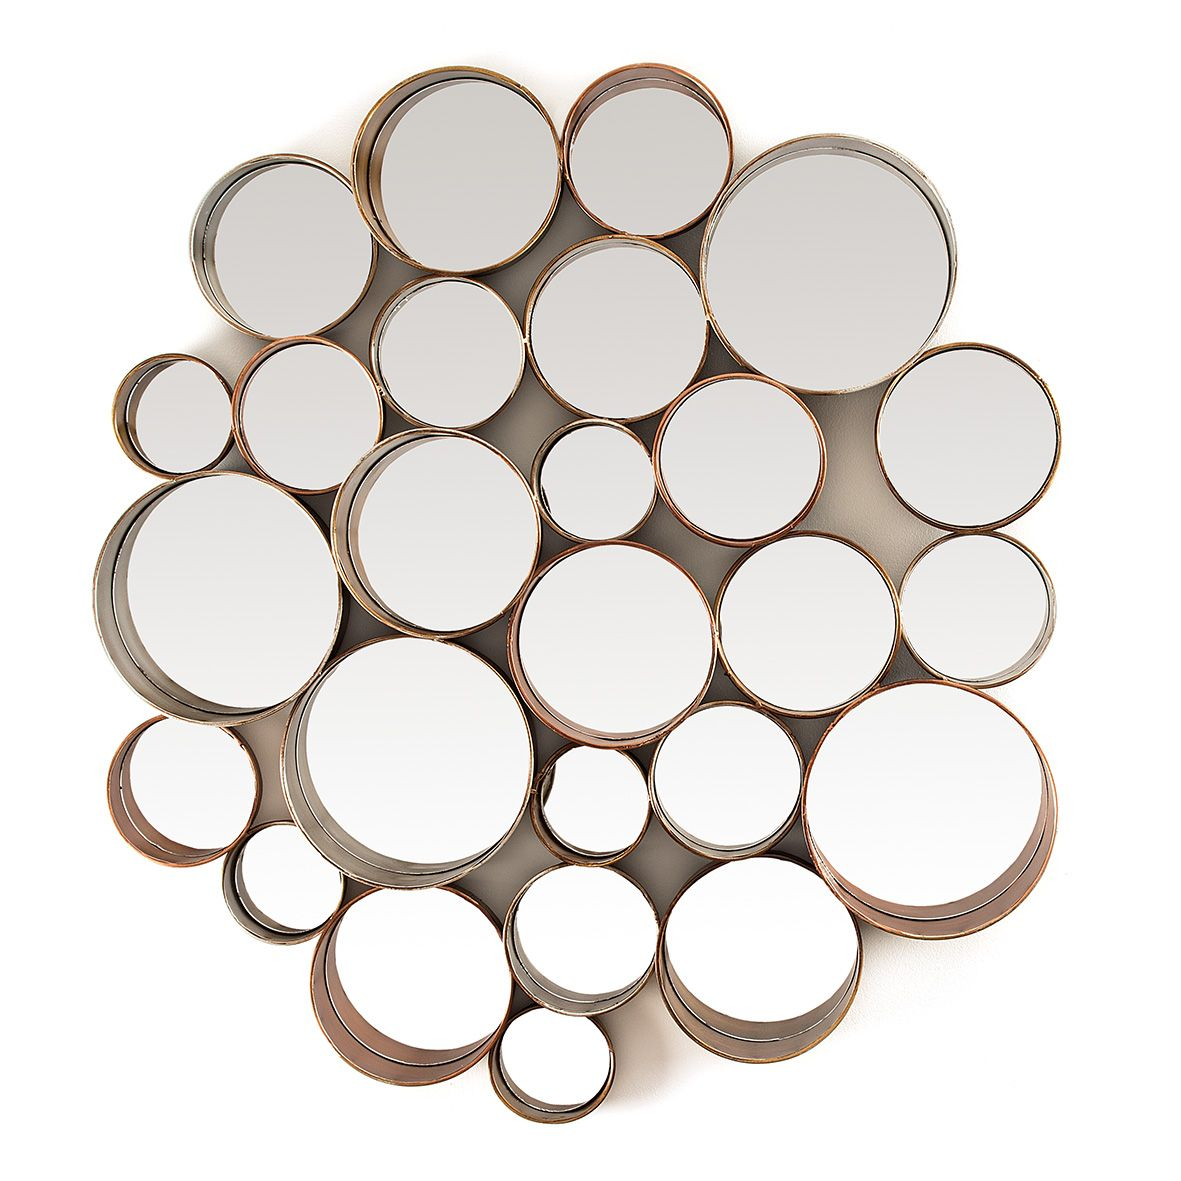 ab45a0c66d71 10 fabulous statement wall mirrors